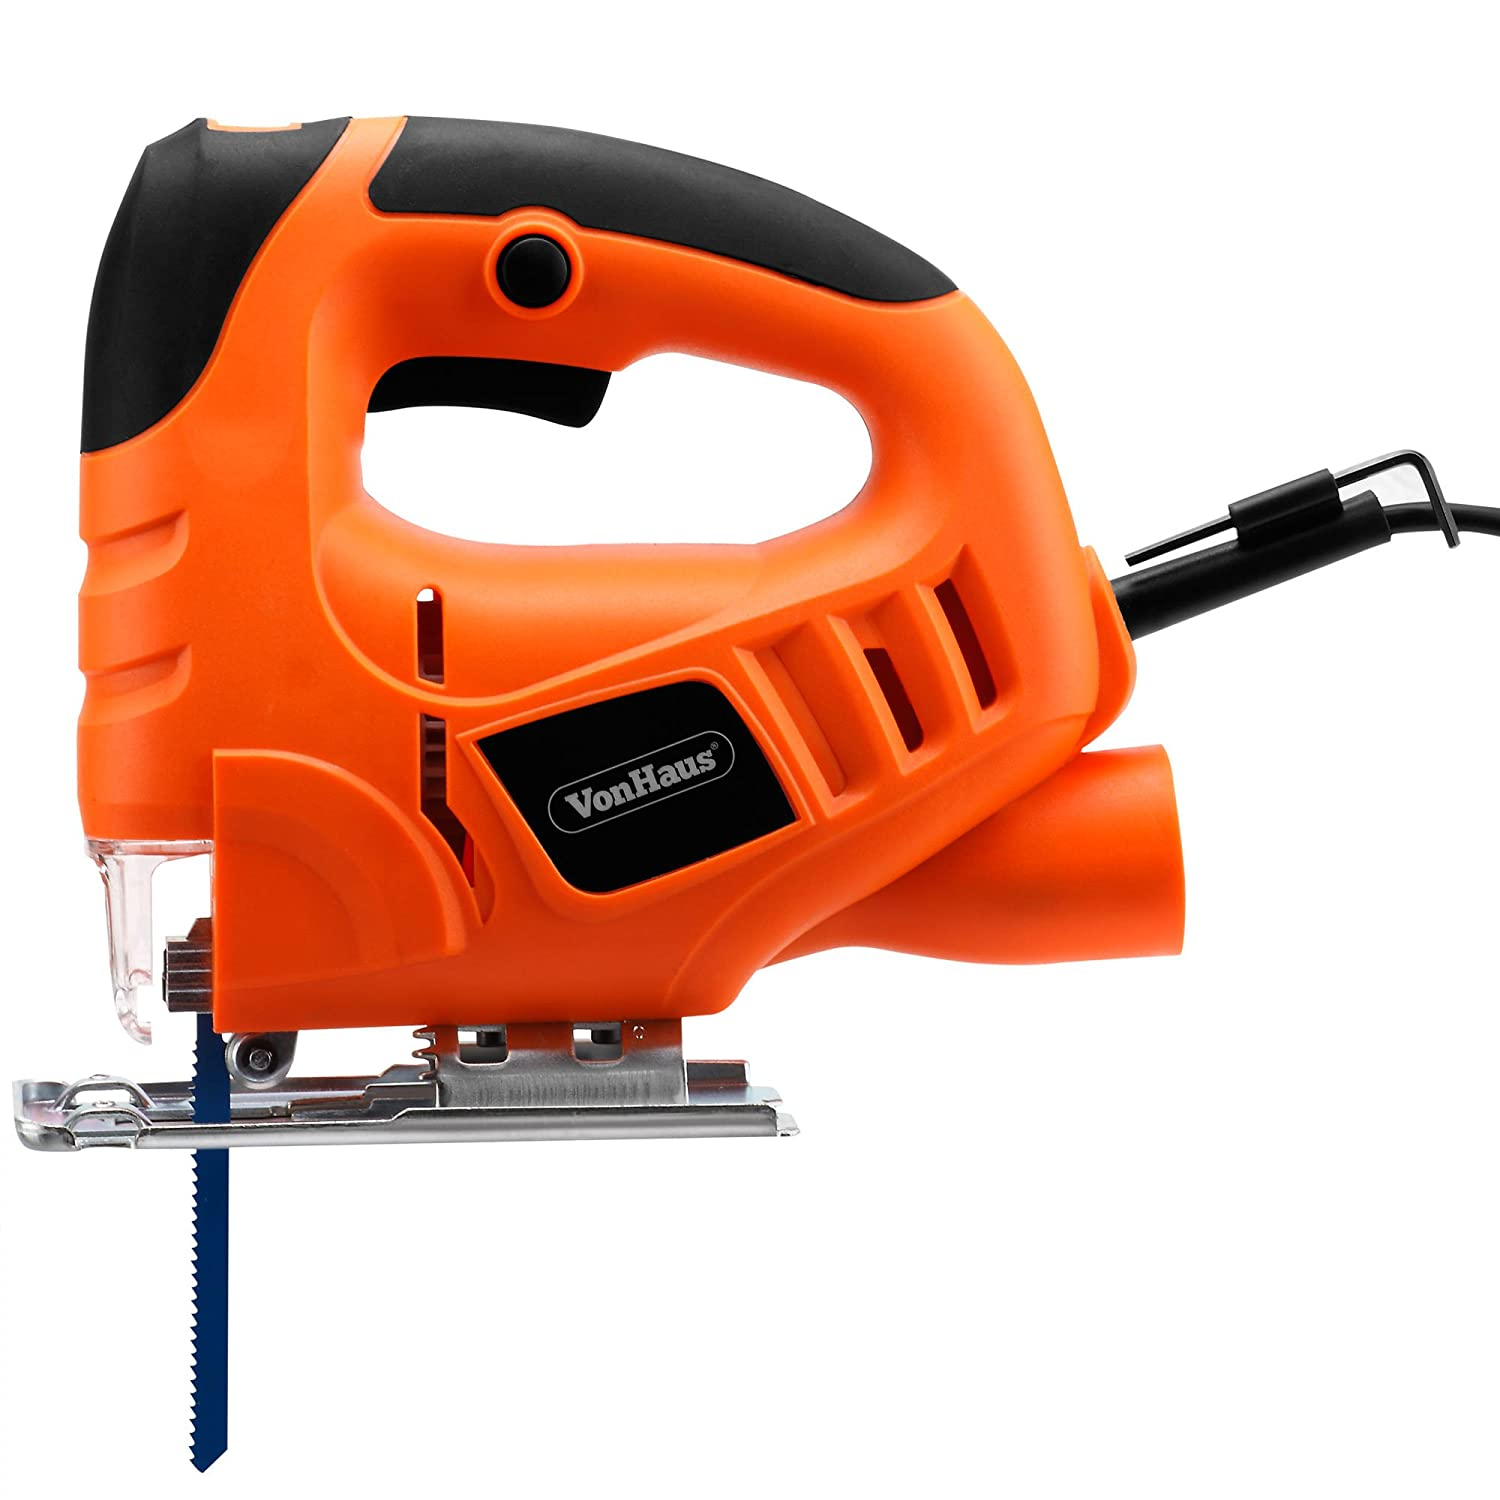 Vonhaus compact 400w electric jigsaw variable speeds splinter vonhaus compact 400w electric jigsaw variable speeds splinter guard dust extraction port 3 blades amazon diy tools greentooth Gallery